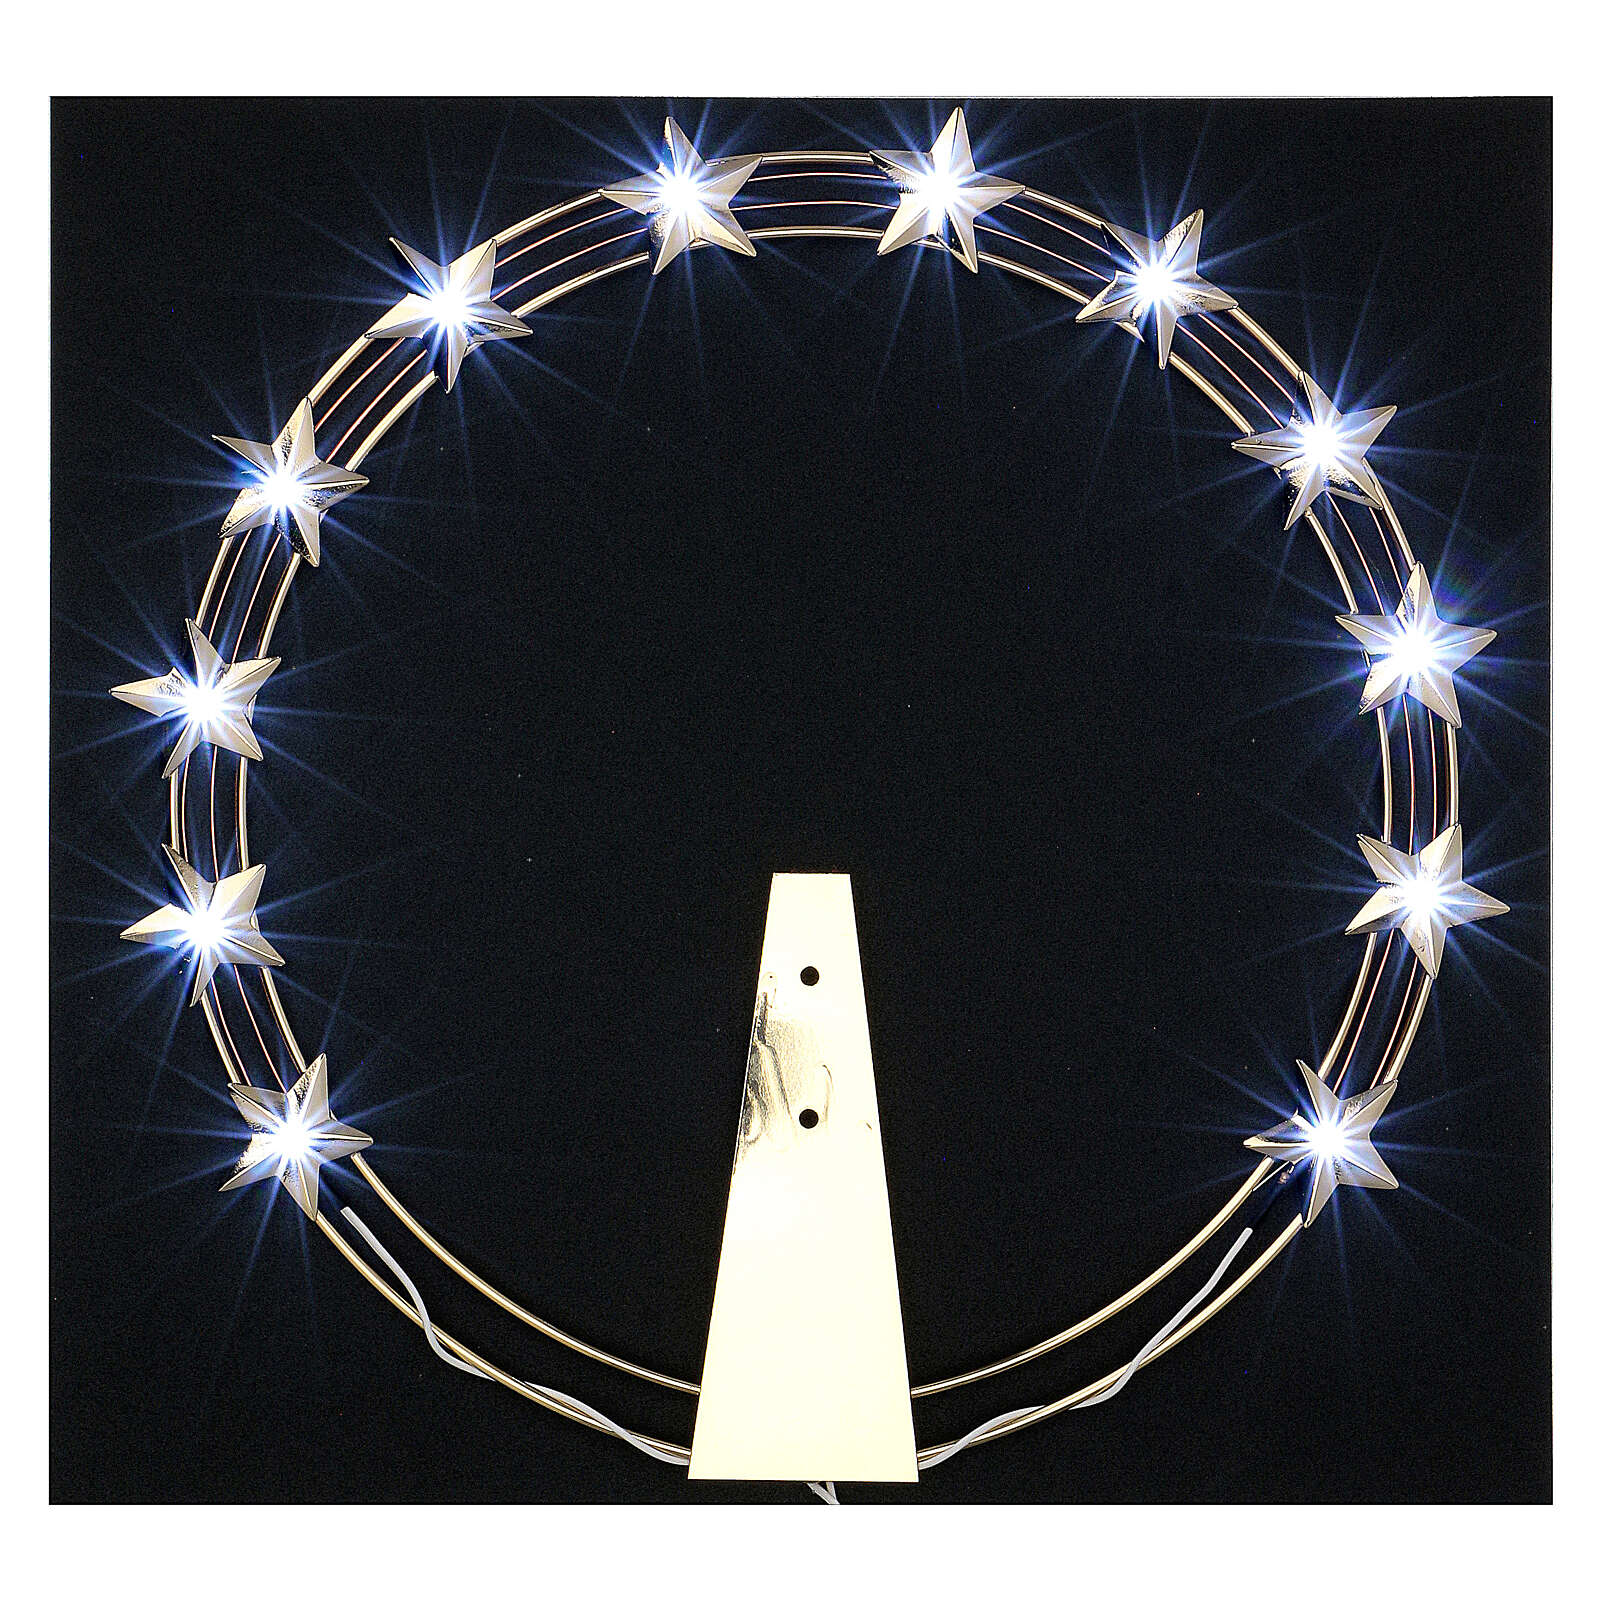 Luminous Starry Halo in Gilded Brass with LEDs, 30 cm diameter 3